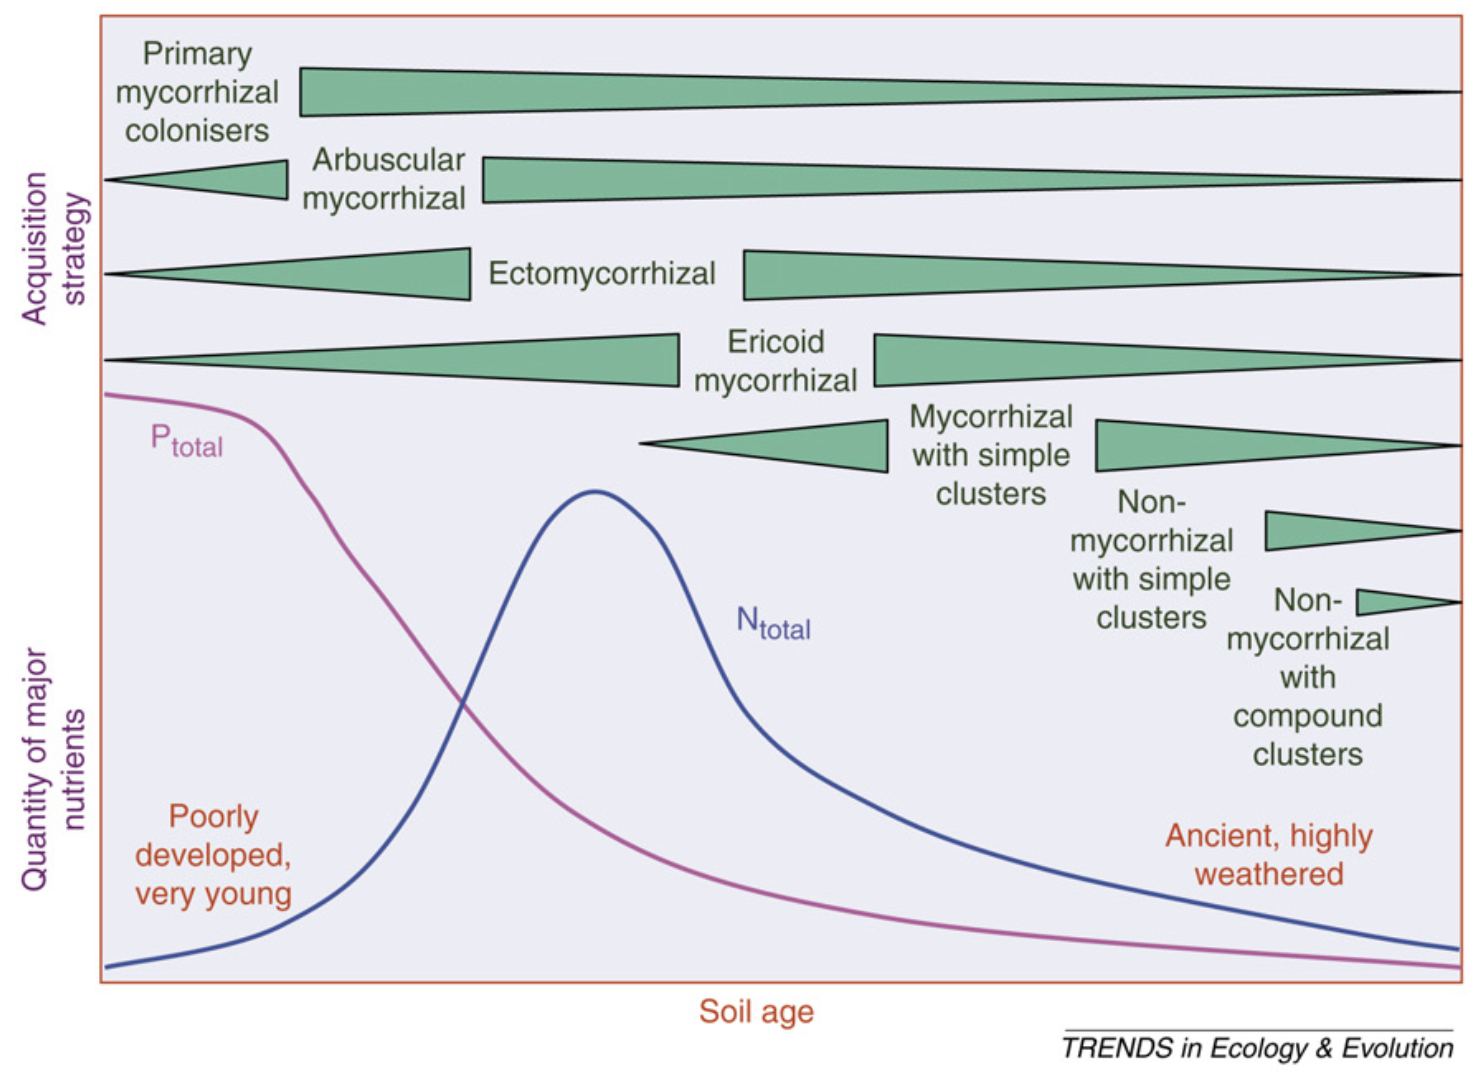 Soil nutrients and nutrient strategy as a function of soil age.  Lambers et al. 2008